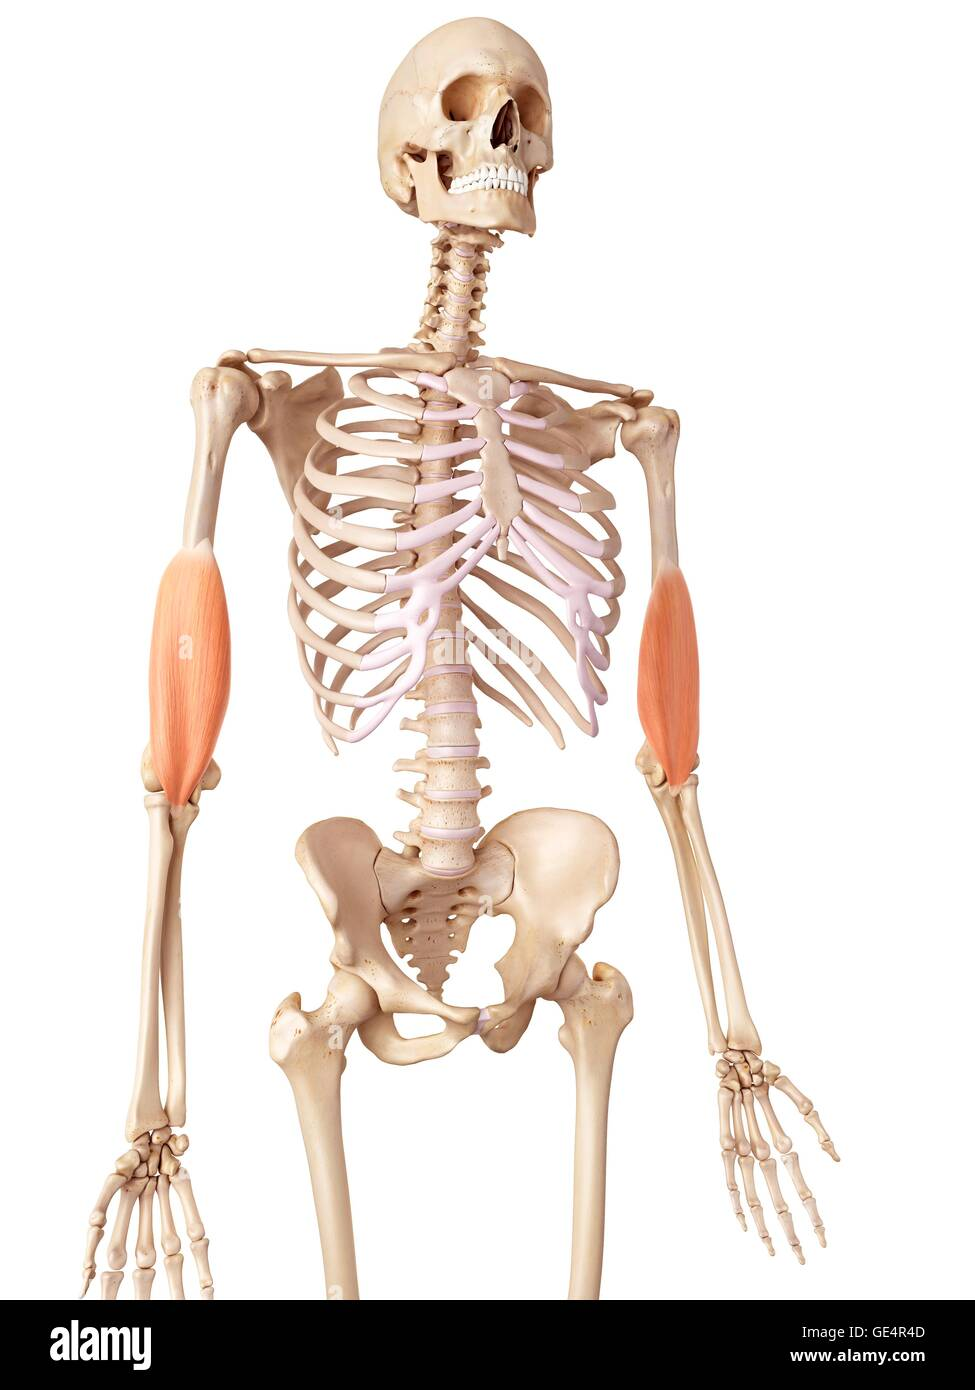 Muscles Of The Human Arms Illustration Stock Photo 111973357 Alamy